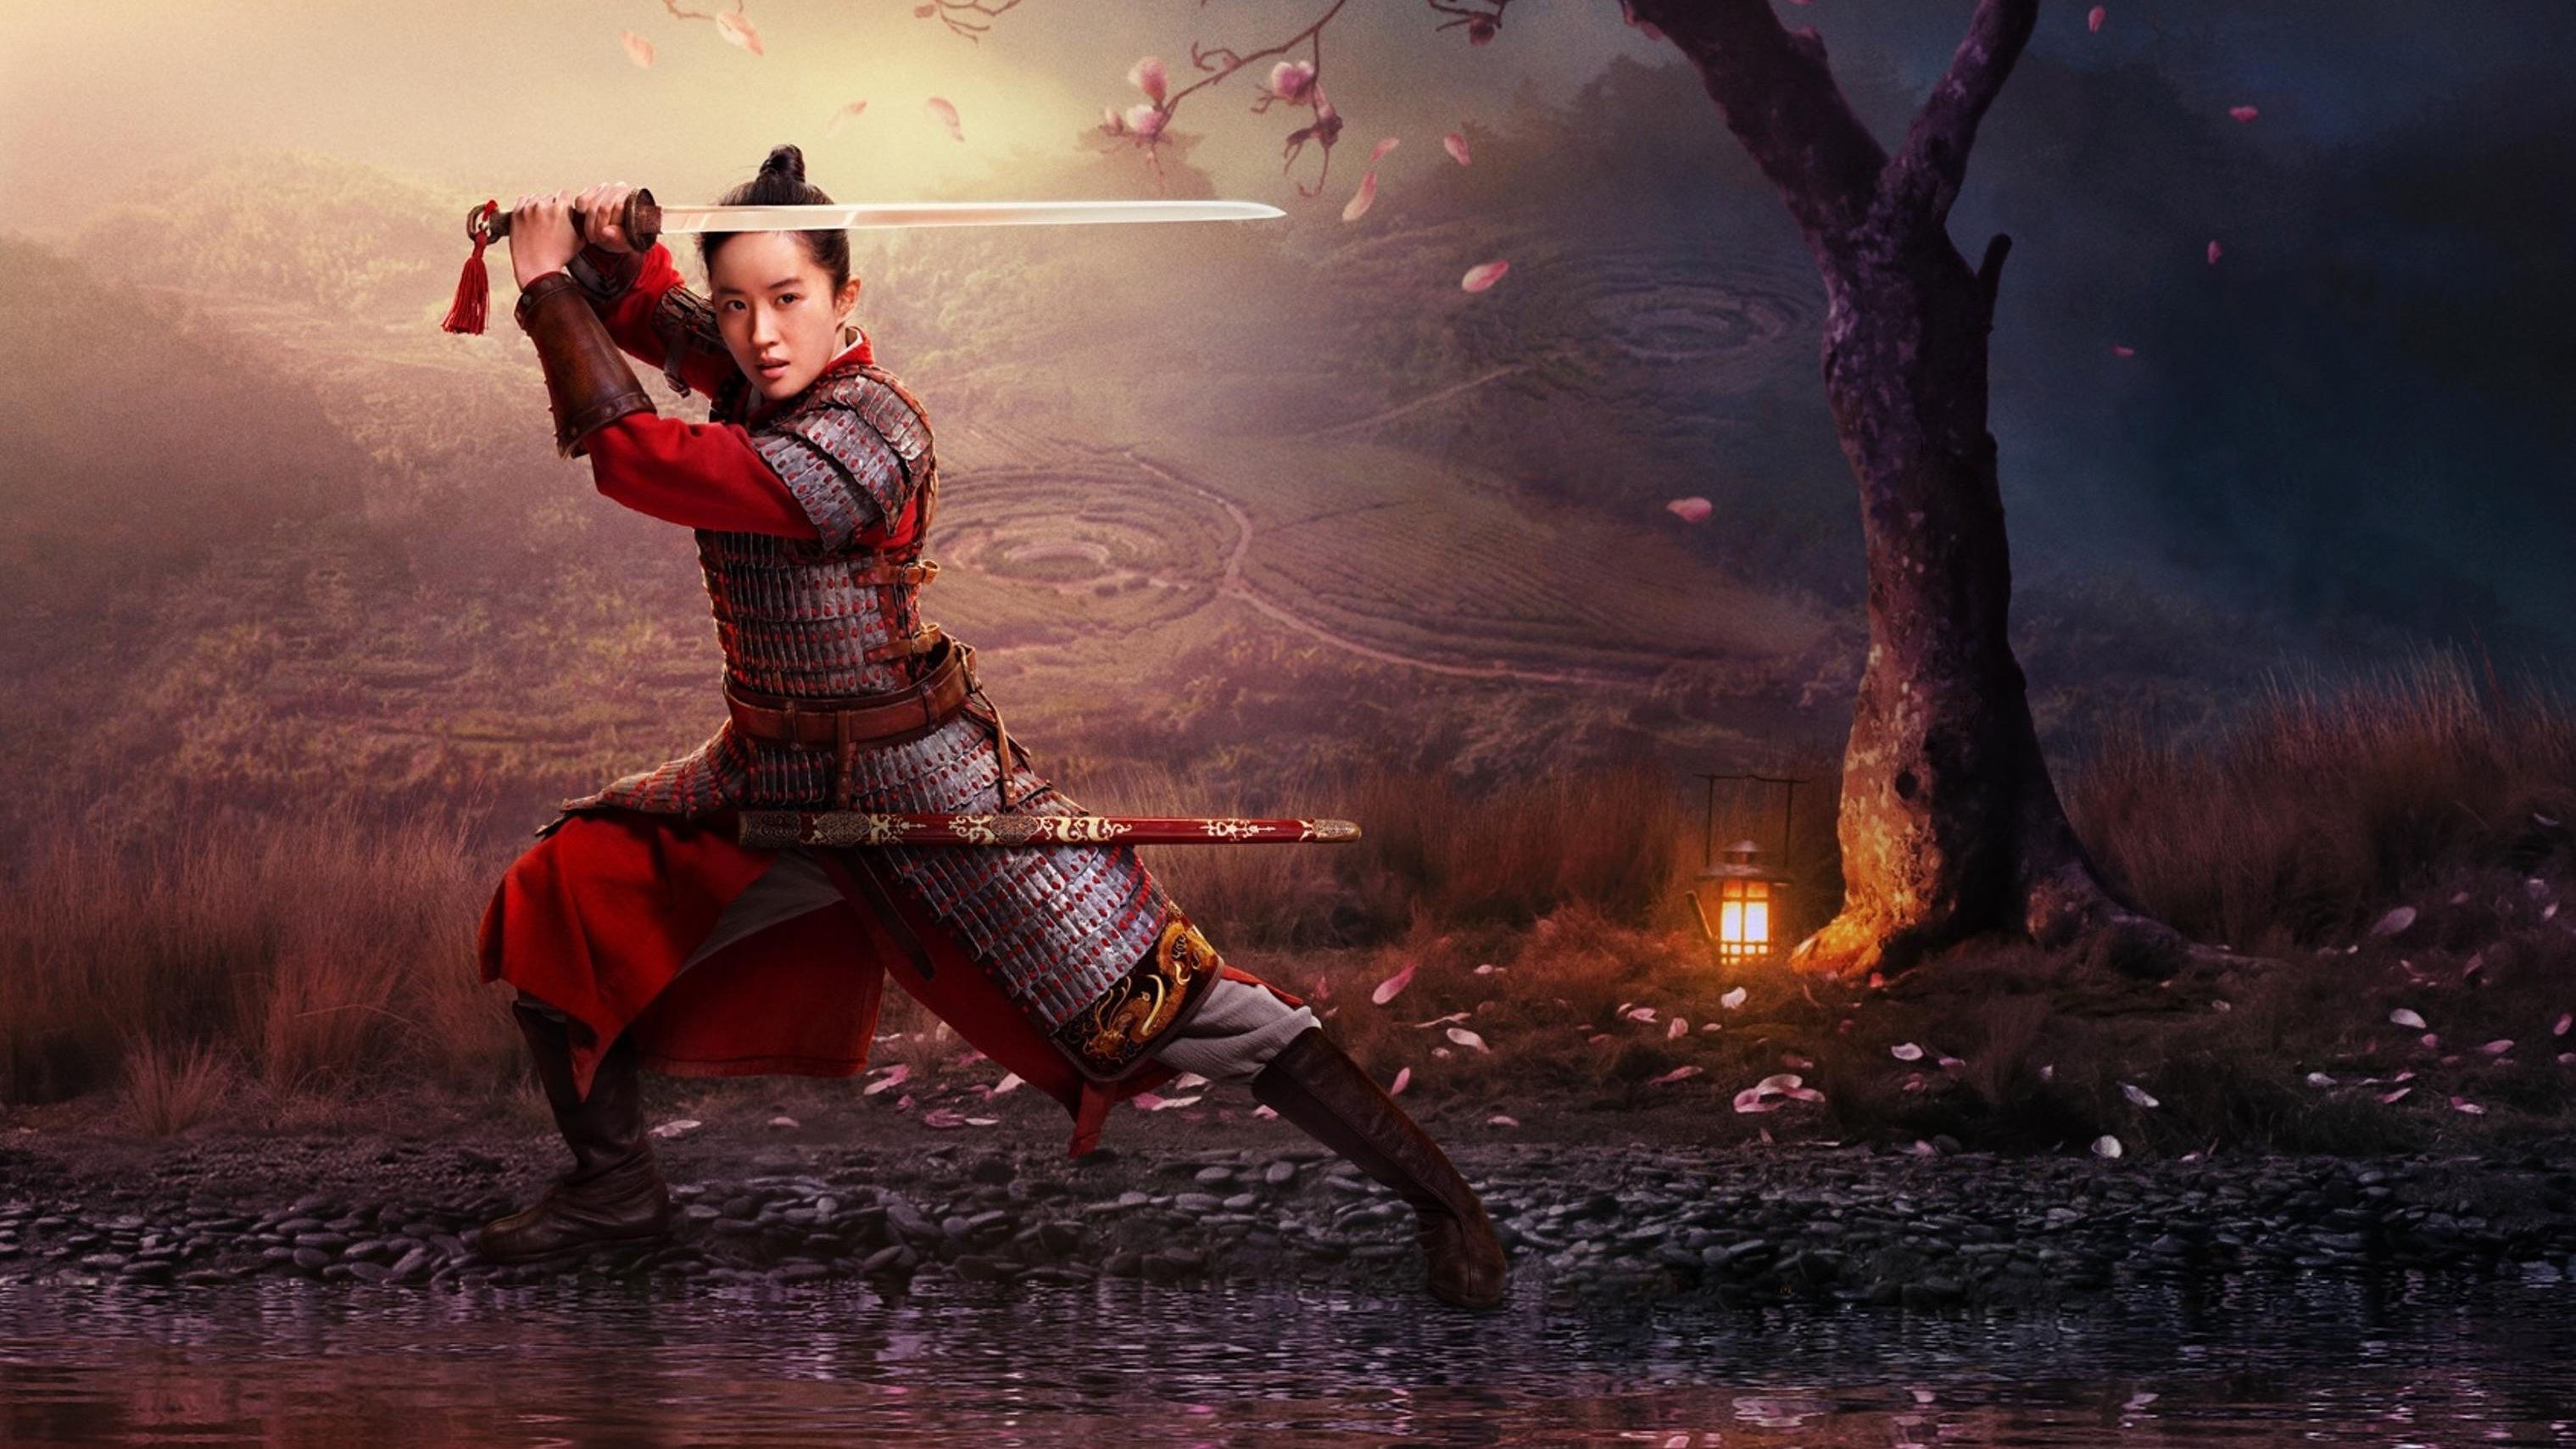 Mulan Movie 2020 Poster Hd Movies 4k Wallpapers Images Backgrounds Photos And Pictures